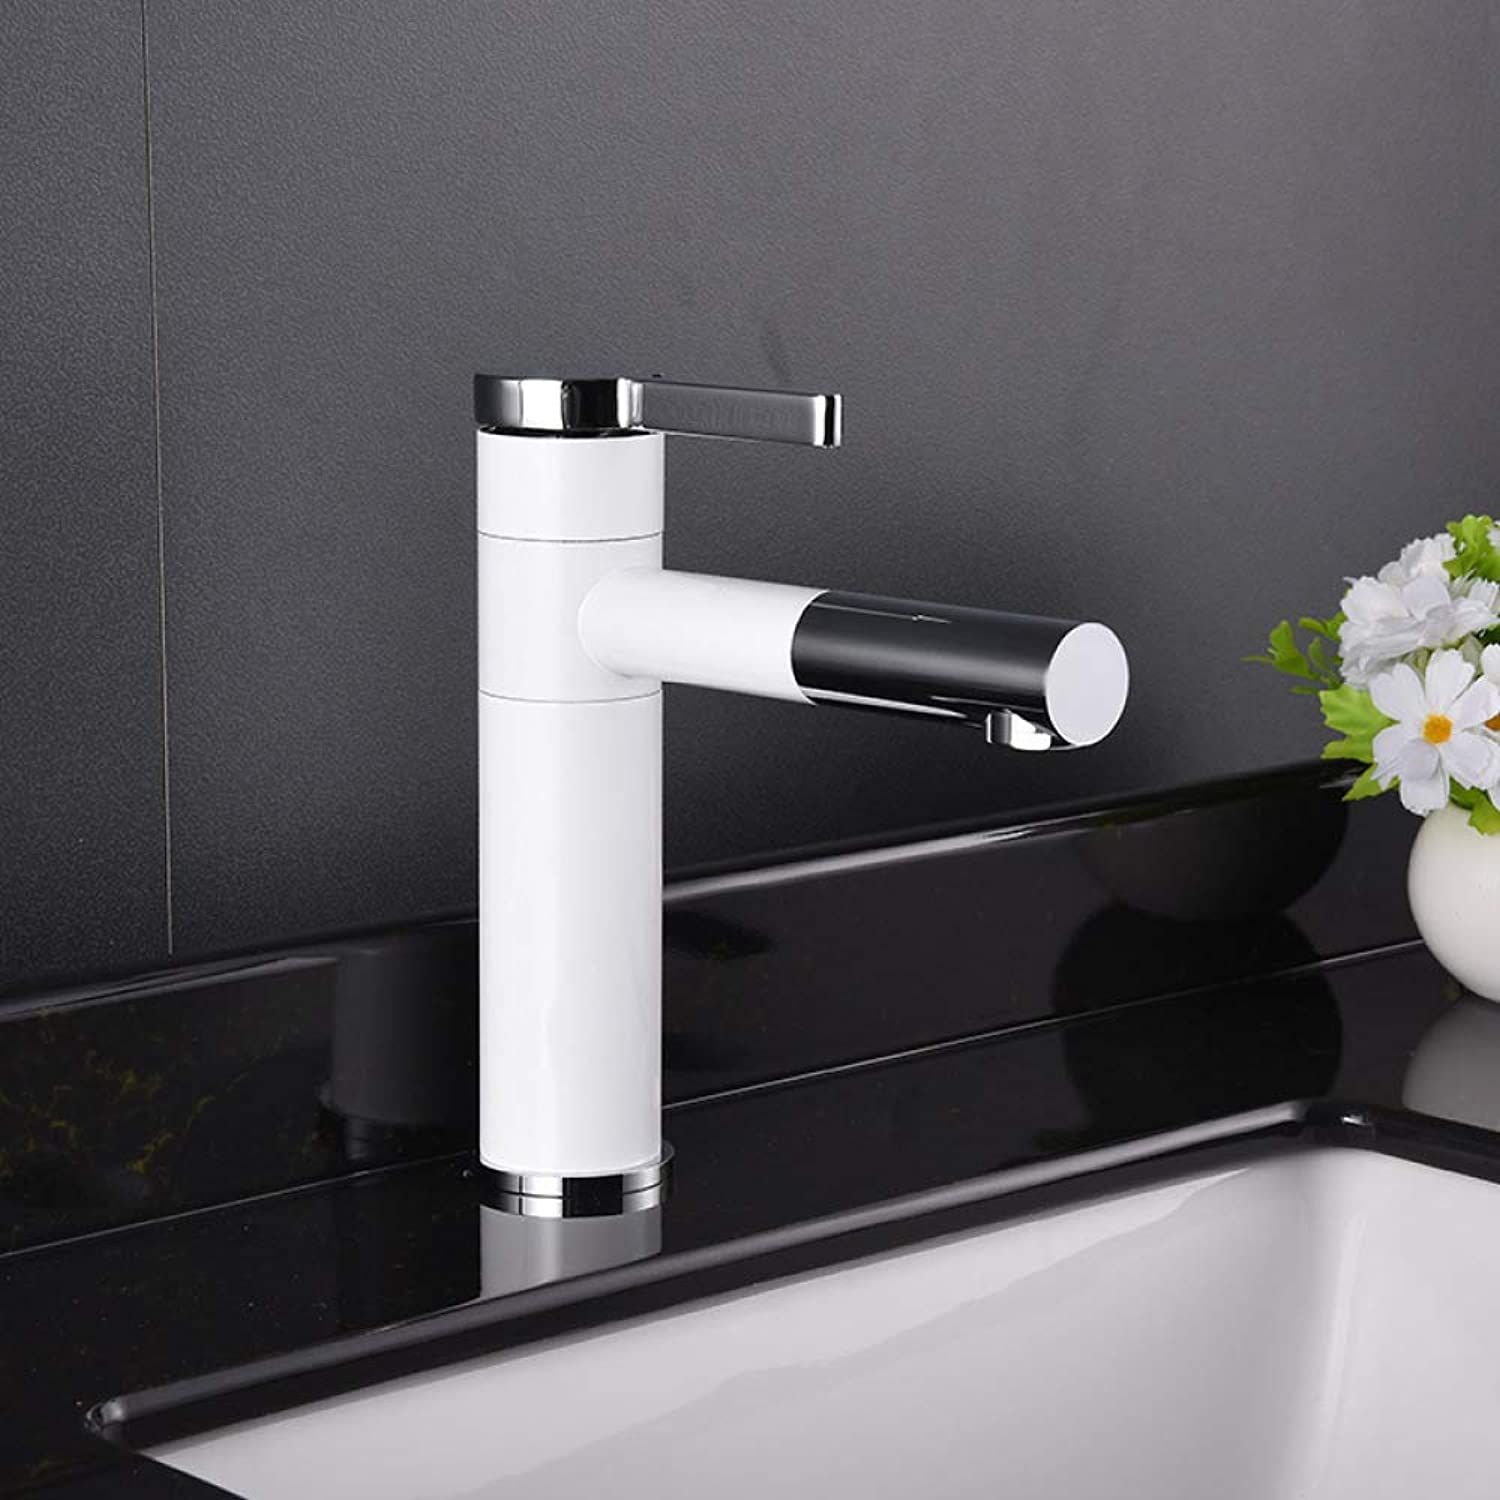 PZXY Faucet Simple Design Basin Faucet Copper Plated White Paint Faucet Elevated Table Basin Faucet hot and Cold Faucet